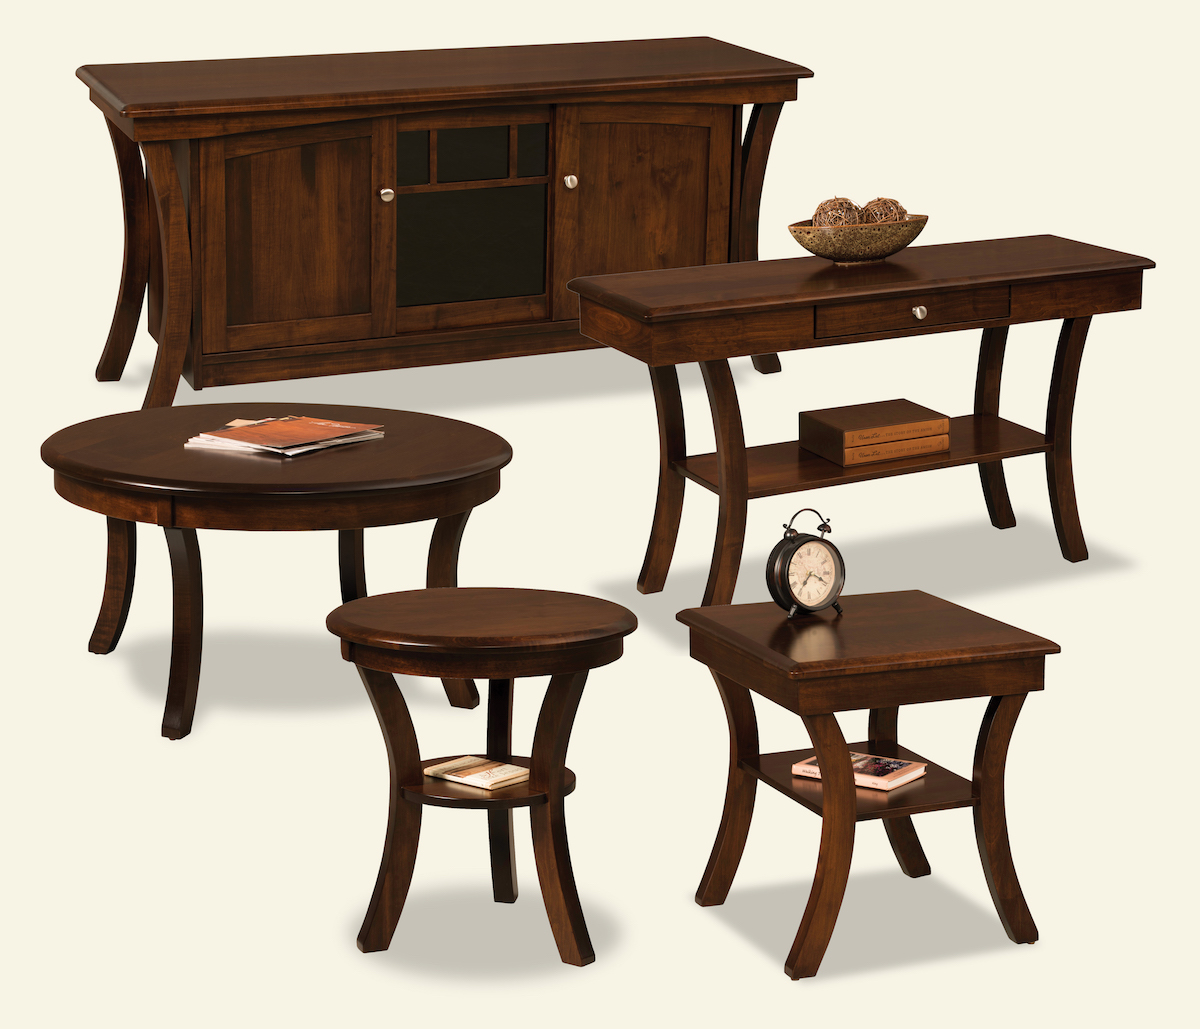 Furniture Stores Usa: Amish ConnectionOak Furniture